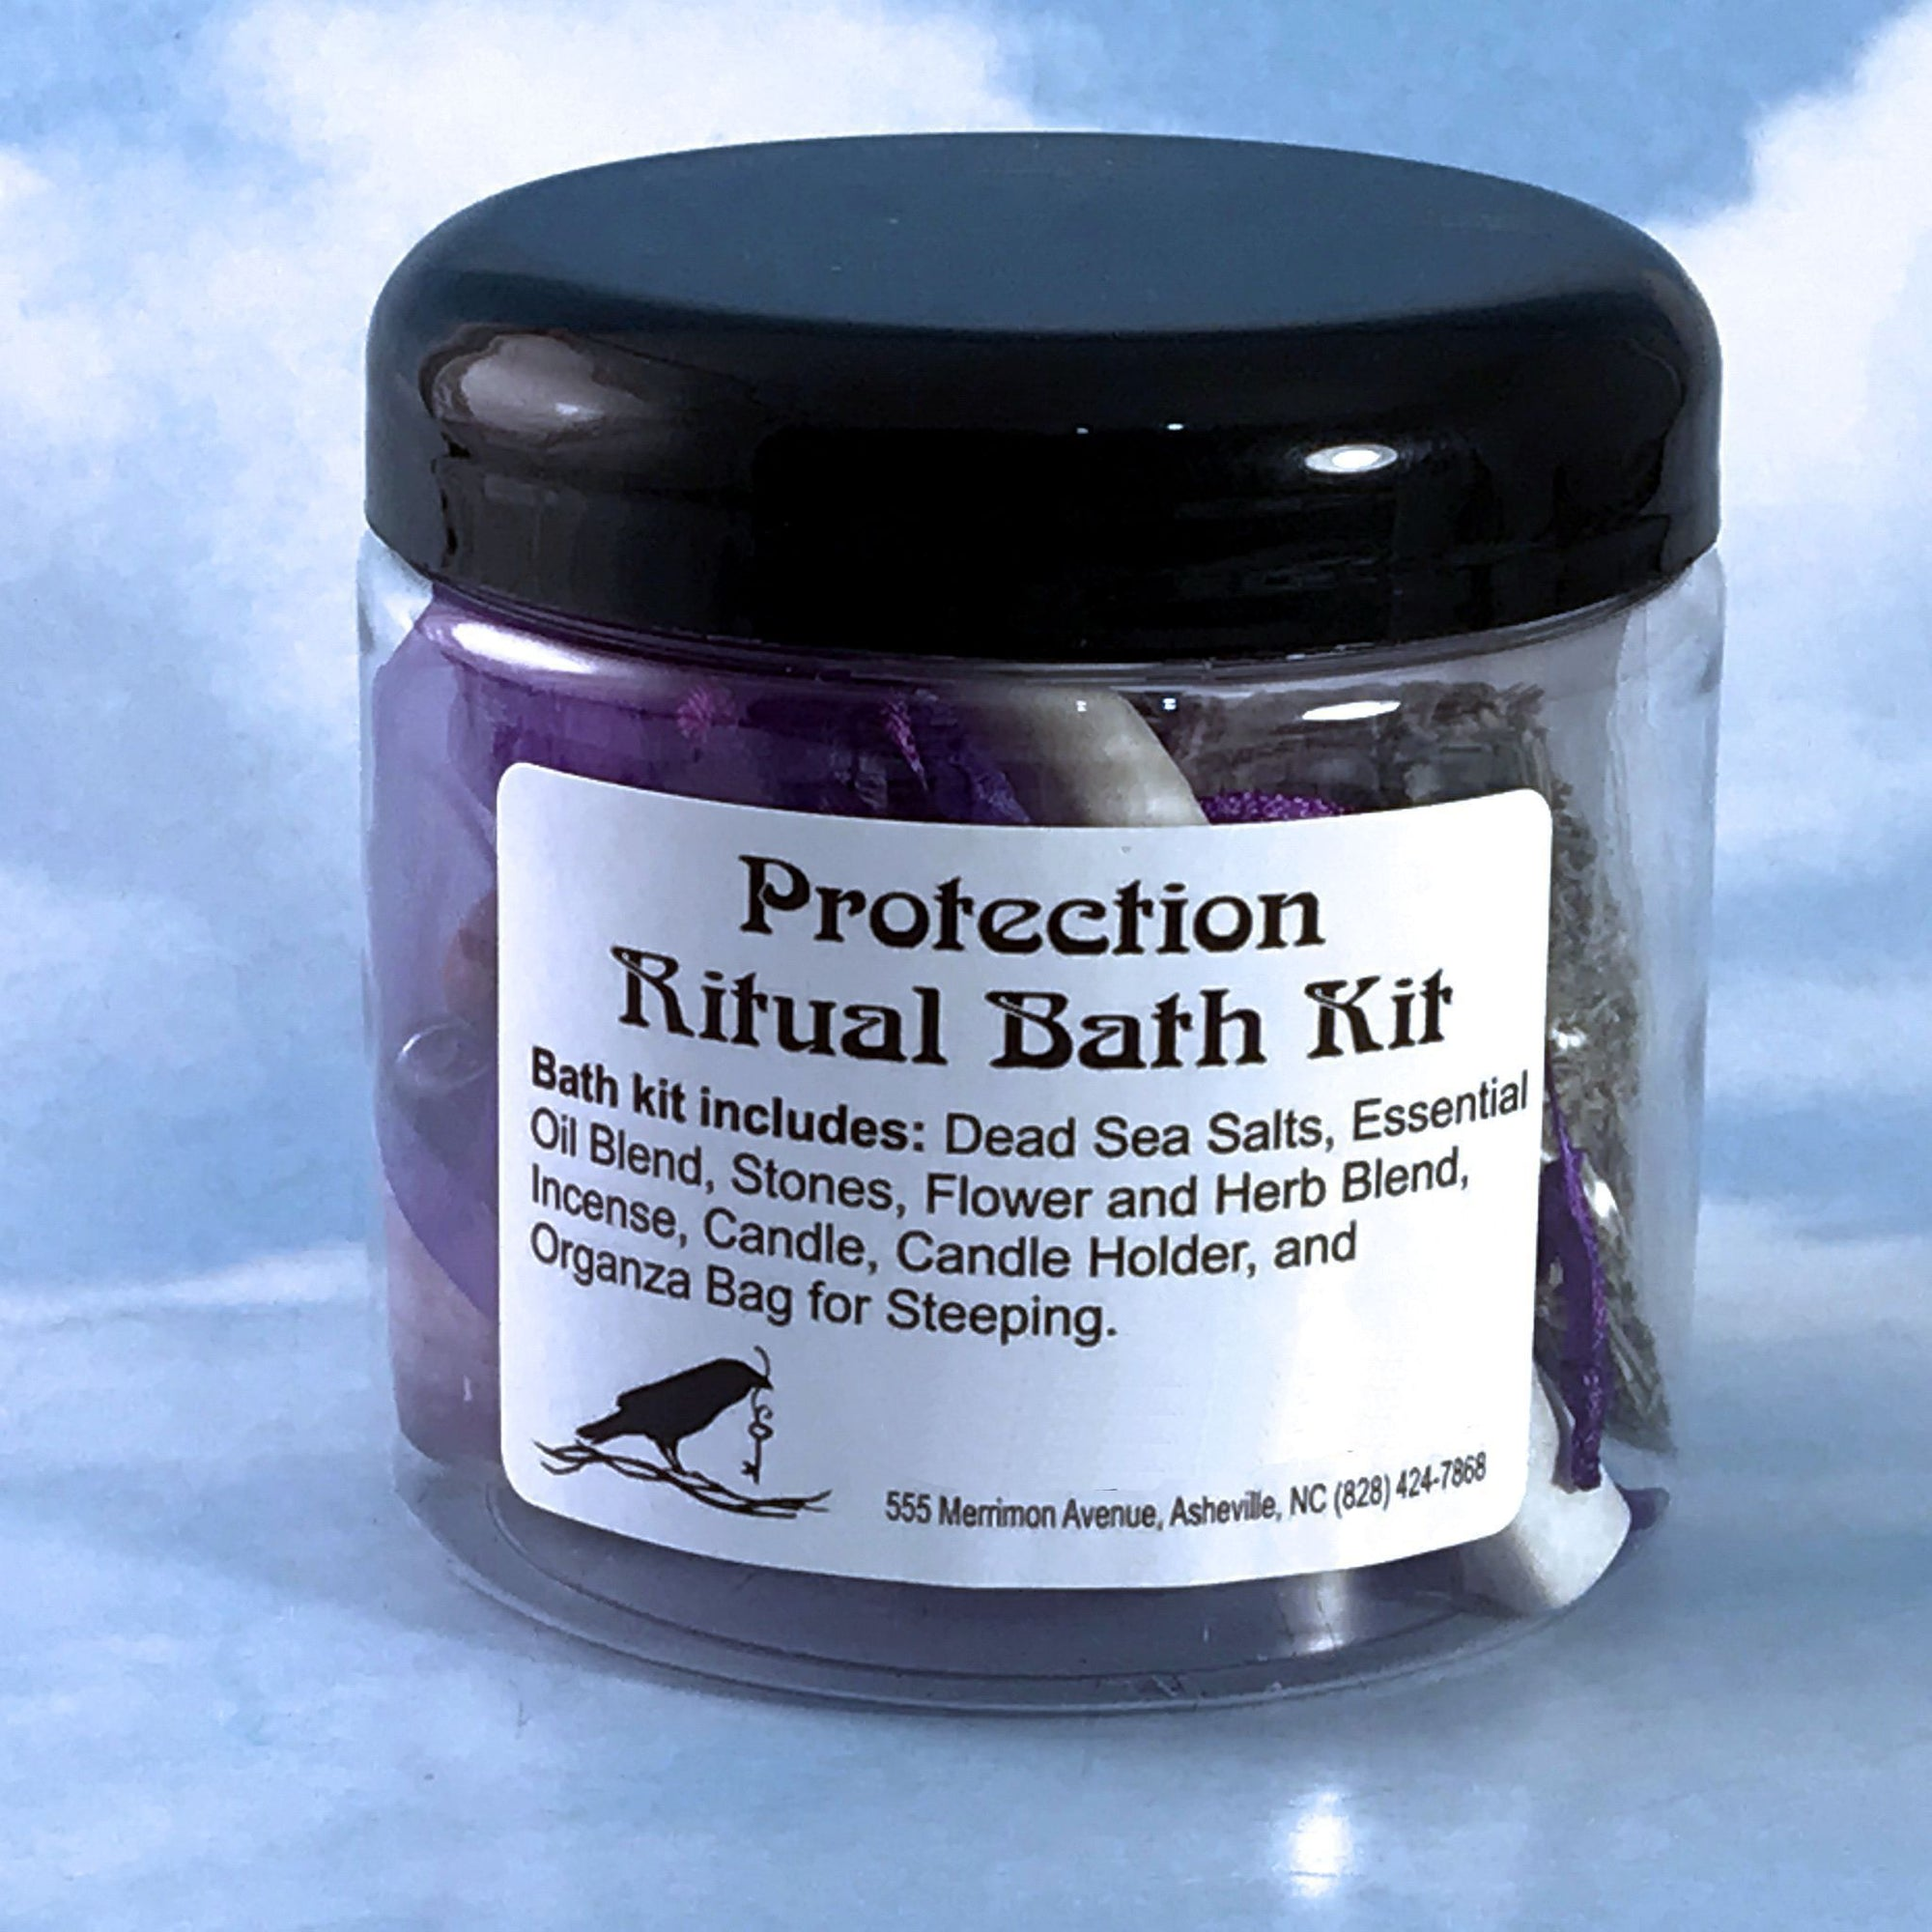 Protection Ritual Bath Kit